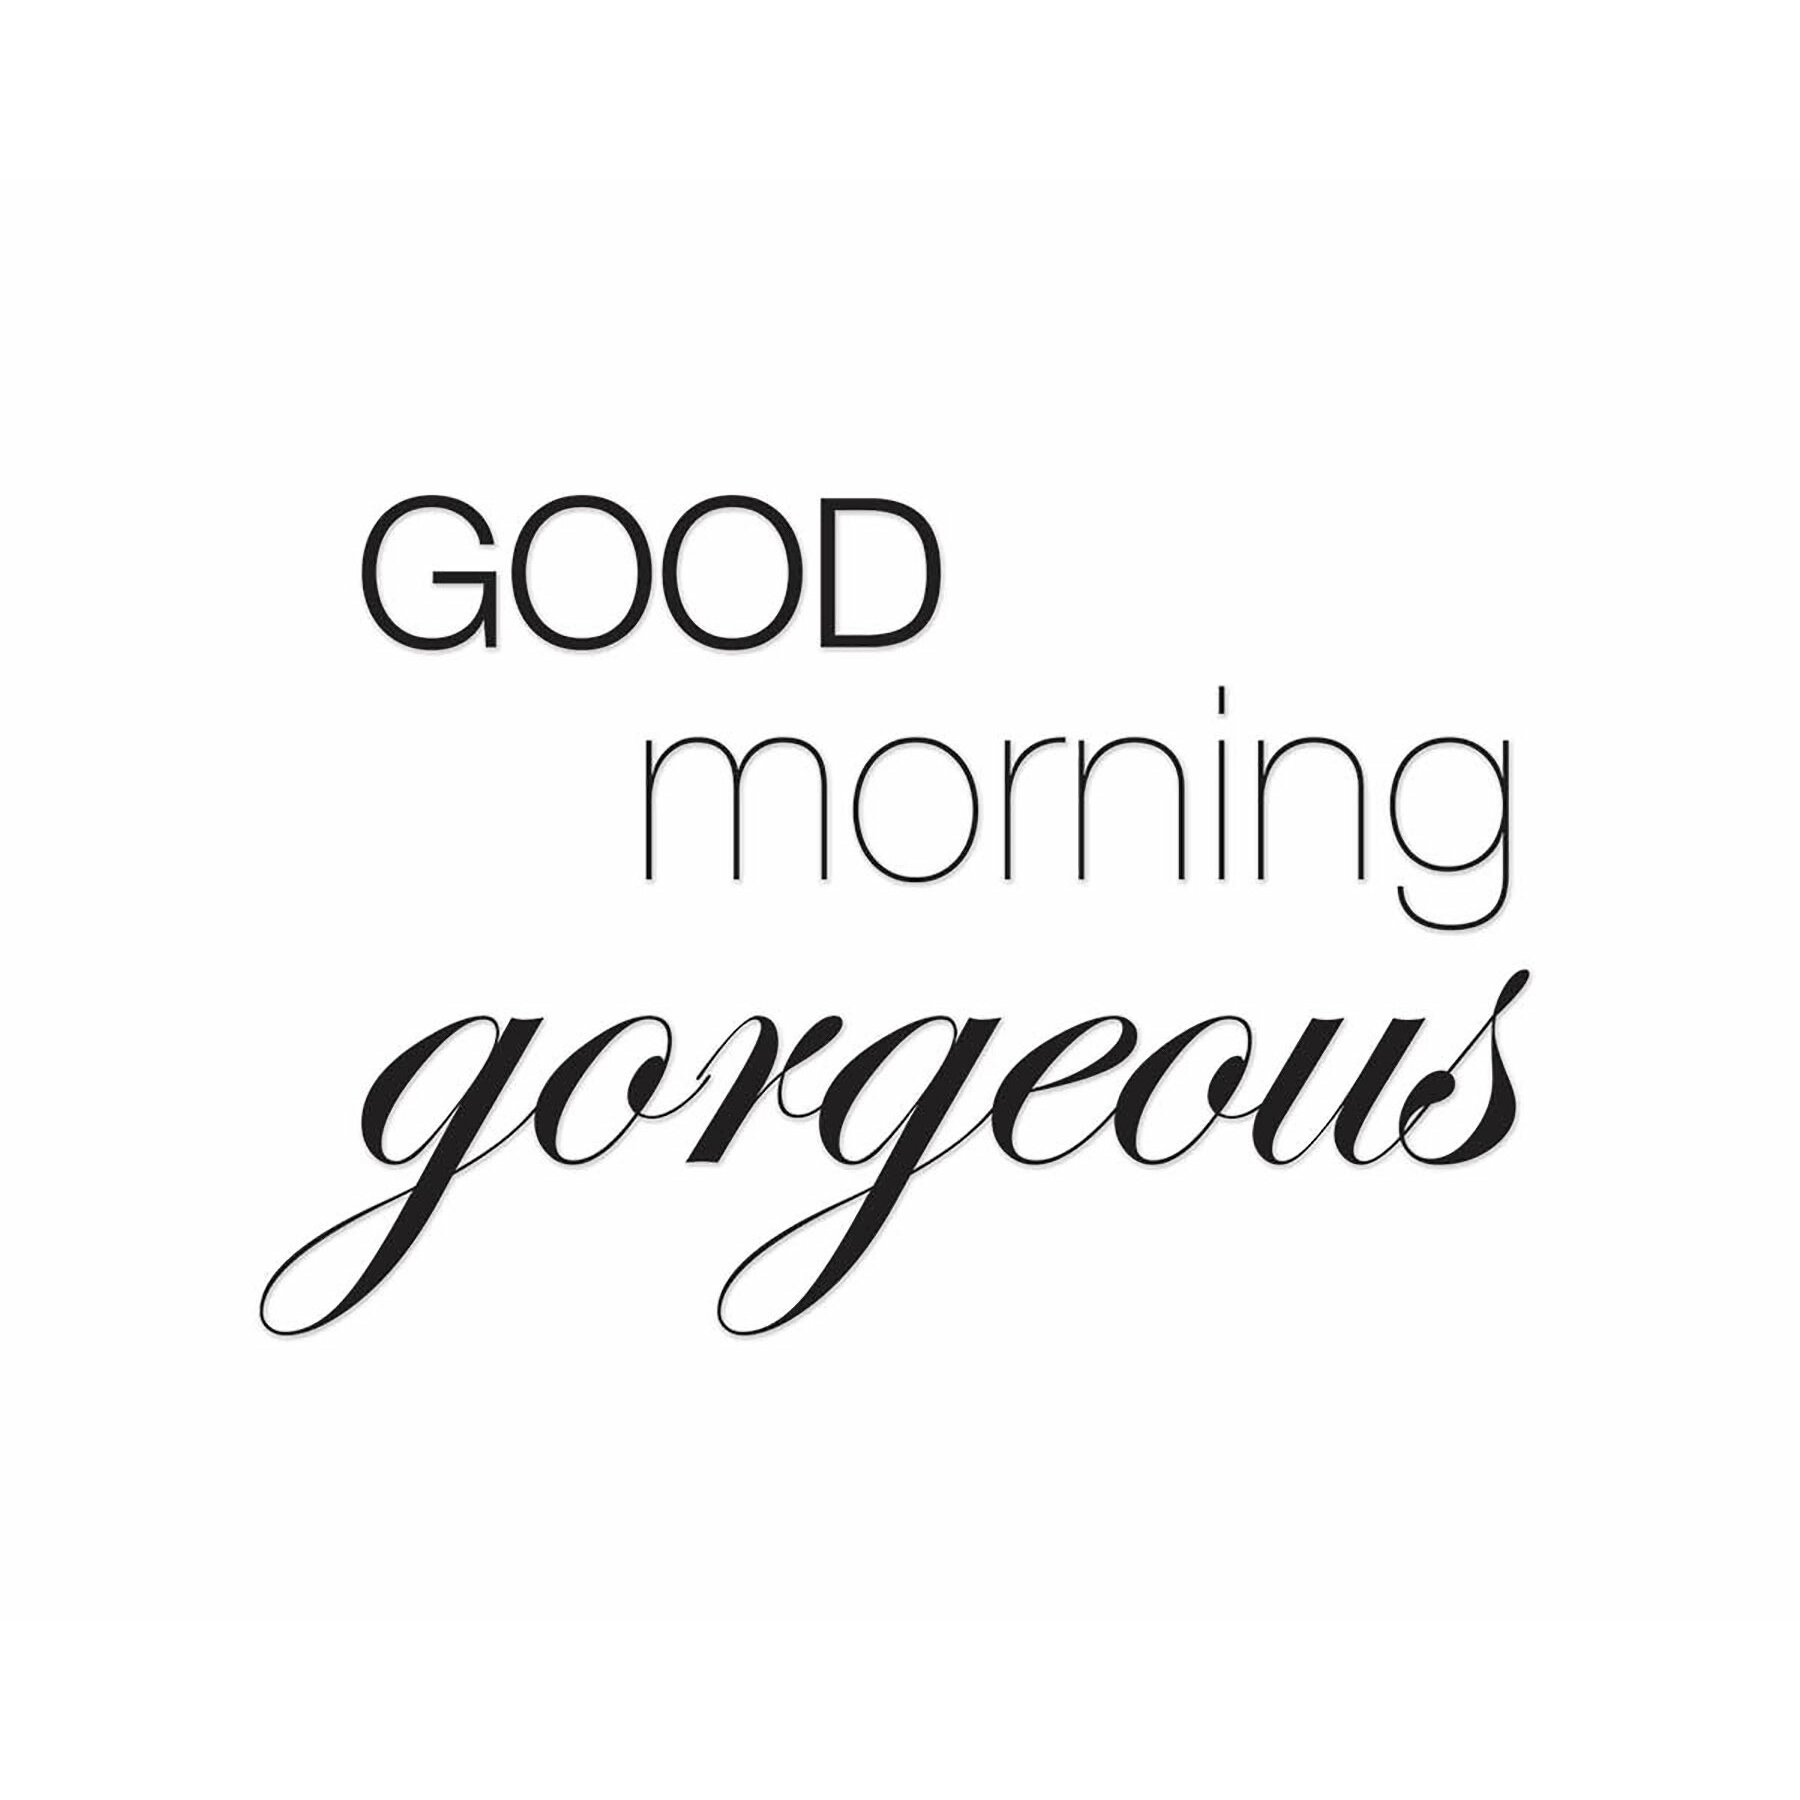 Good Morning Gorgeous French : Ptm images good morning gorgeous textual art on canvas